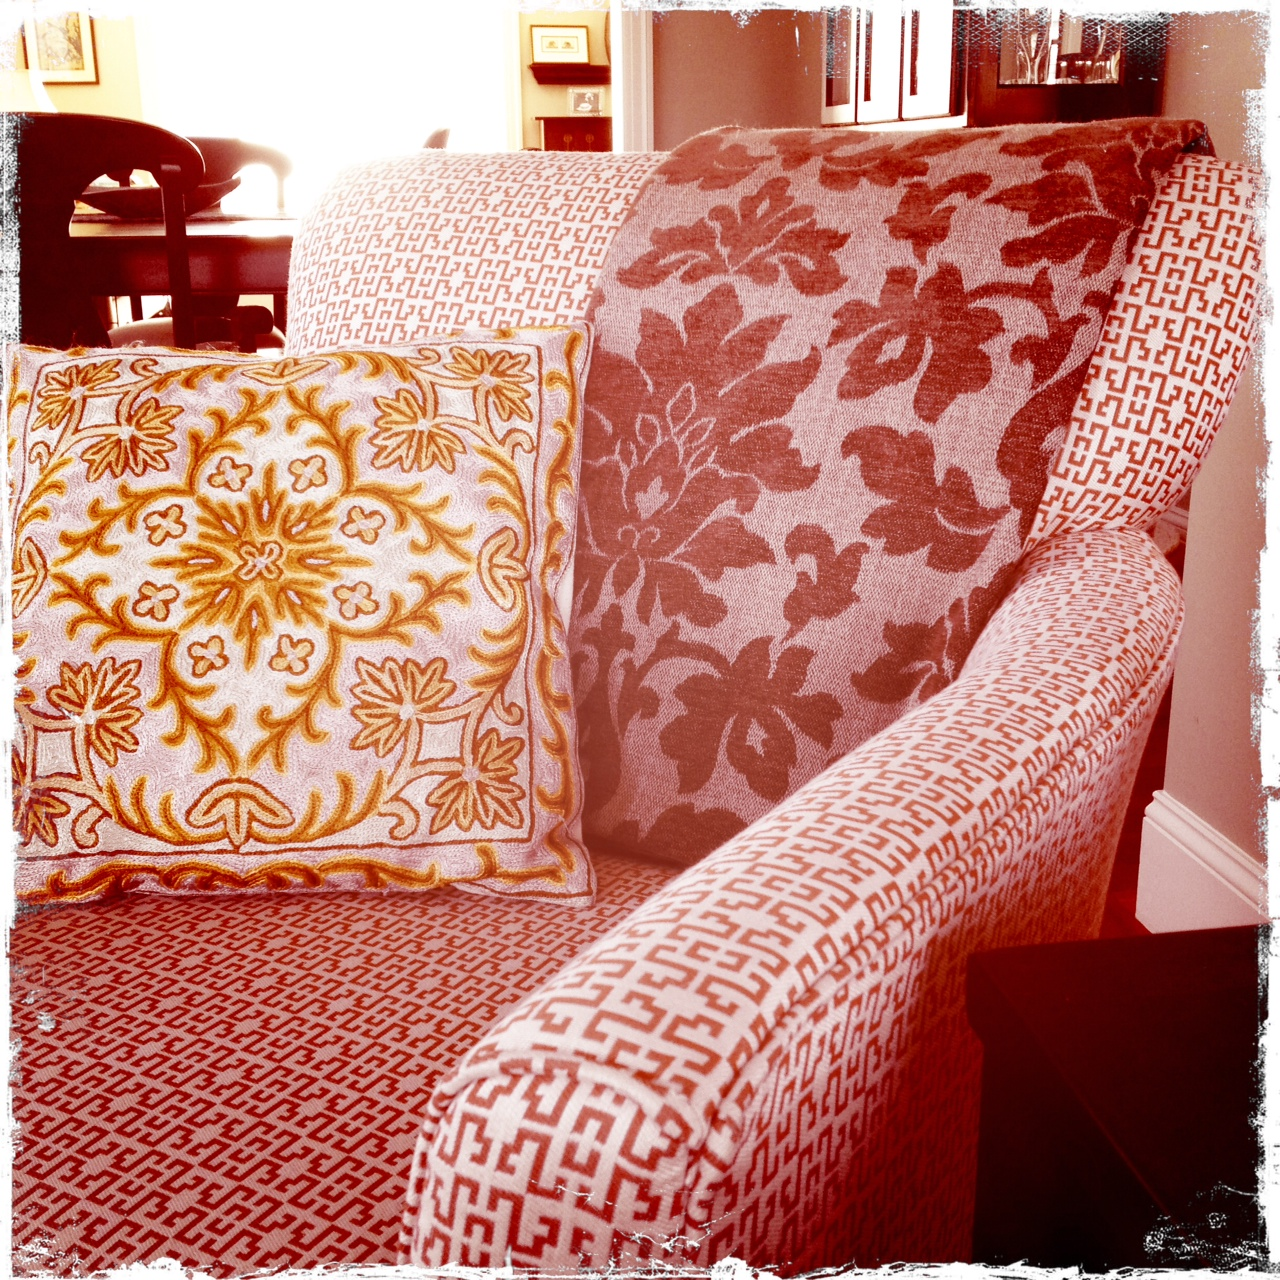 Pillow from India on Armchair